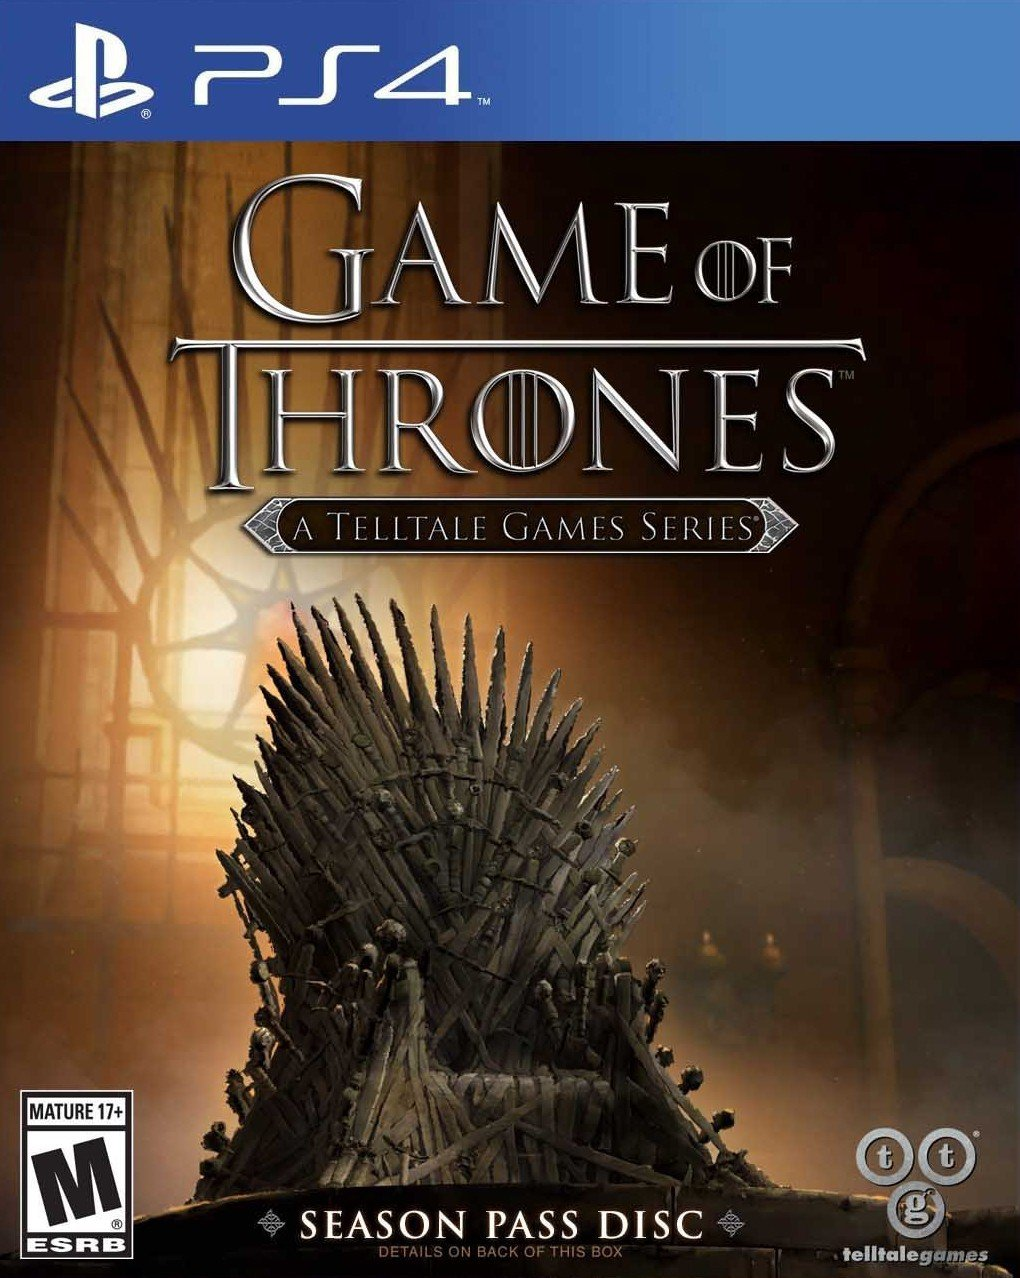 Game of Thrones - A Telltale Games Series - 权力的游戏